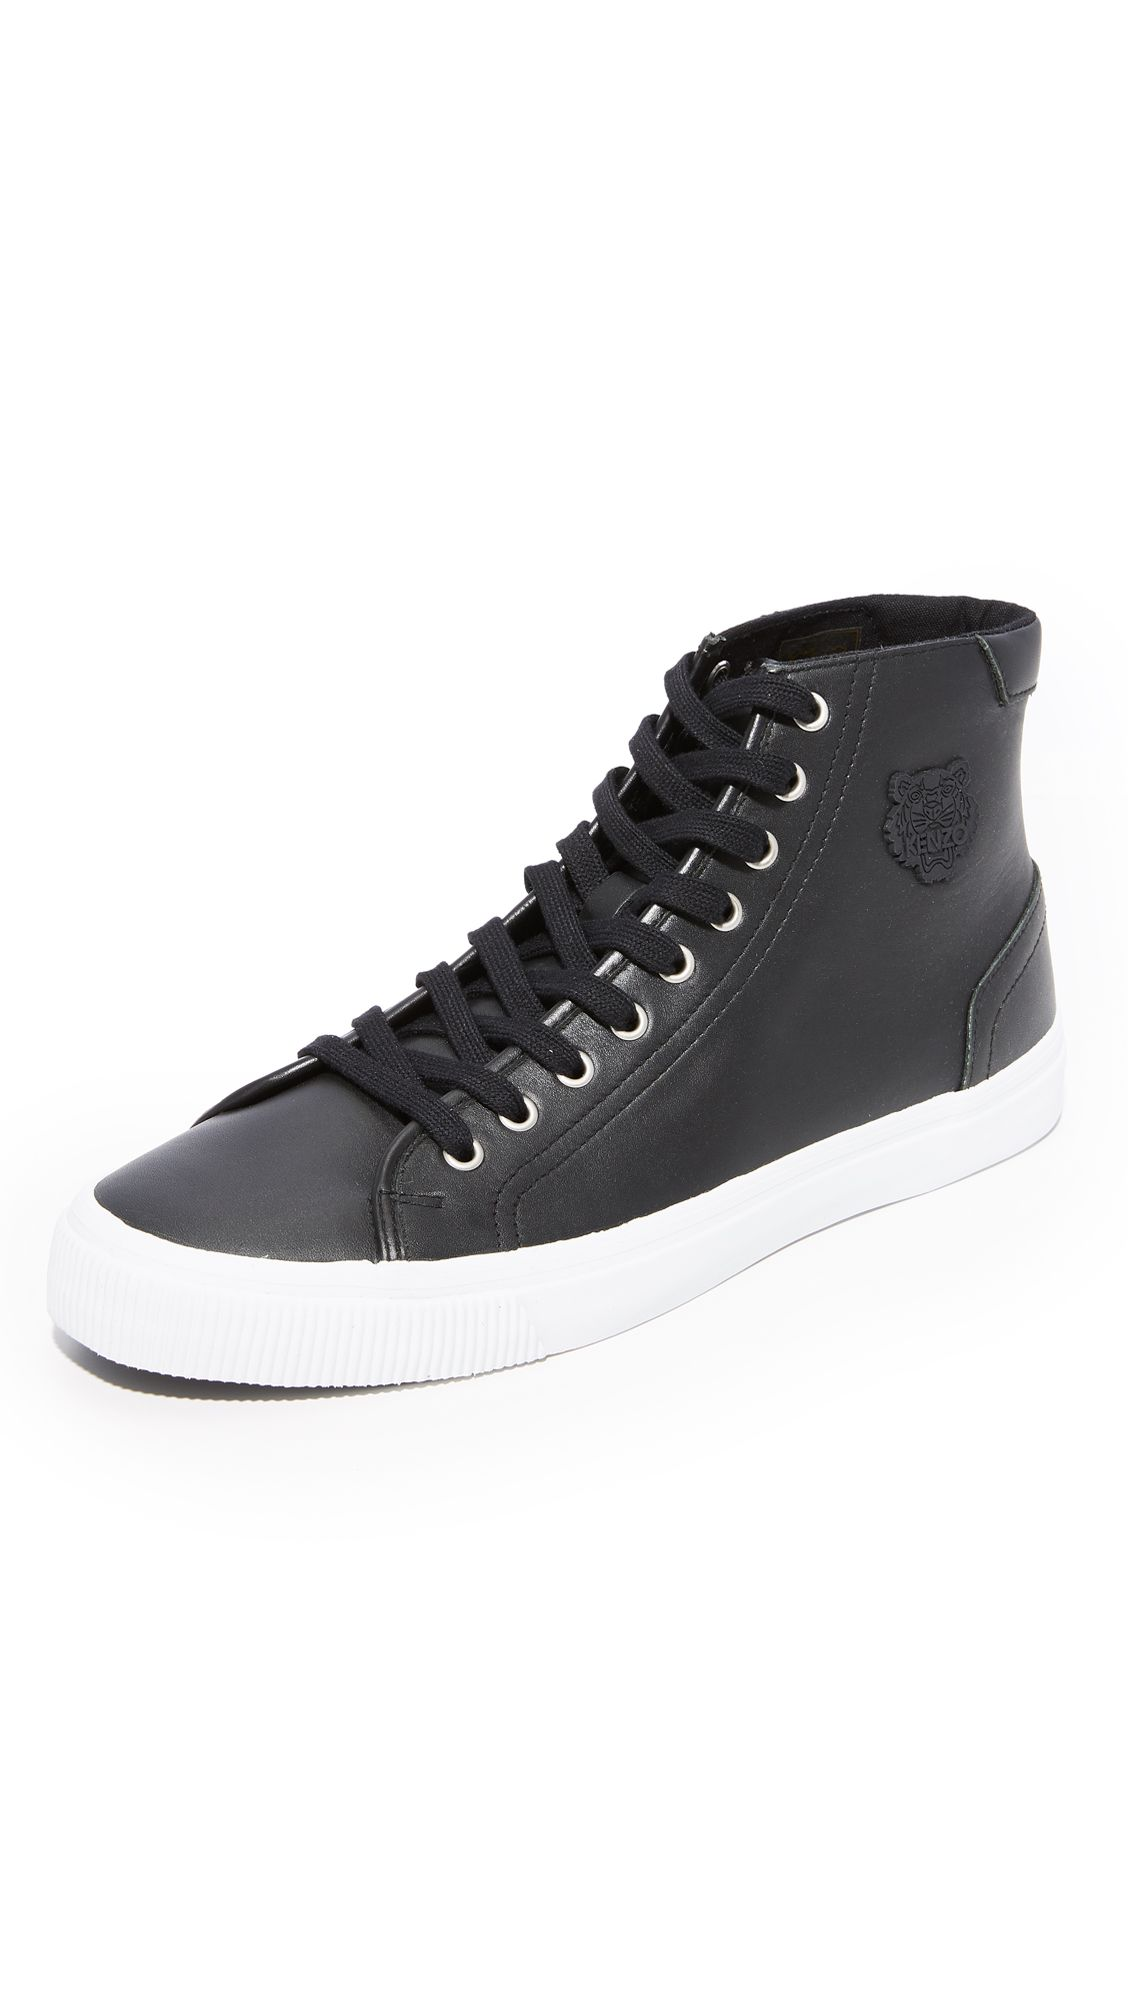 09cc6ac625 KENZO Vulcano Leather High Top Sneakers. #kenzo #shoes #sneakers ...